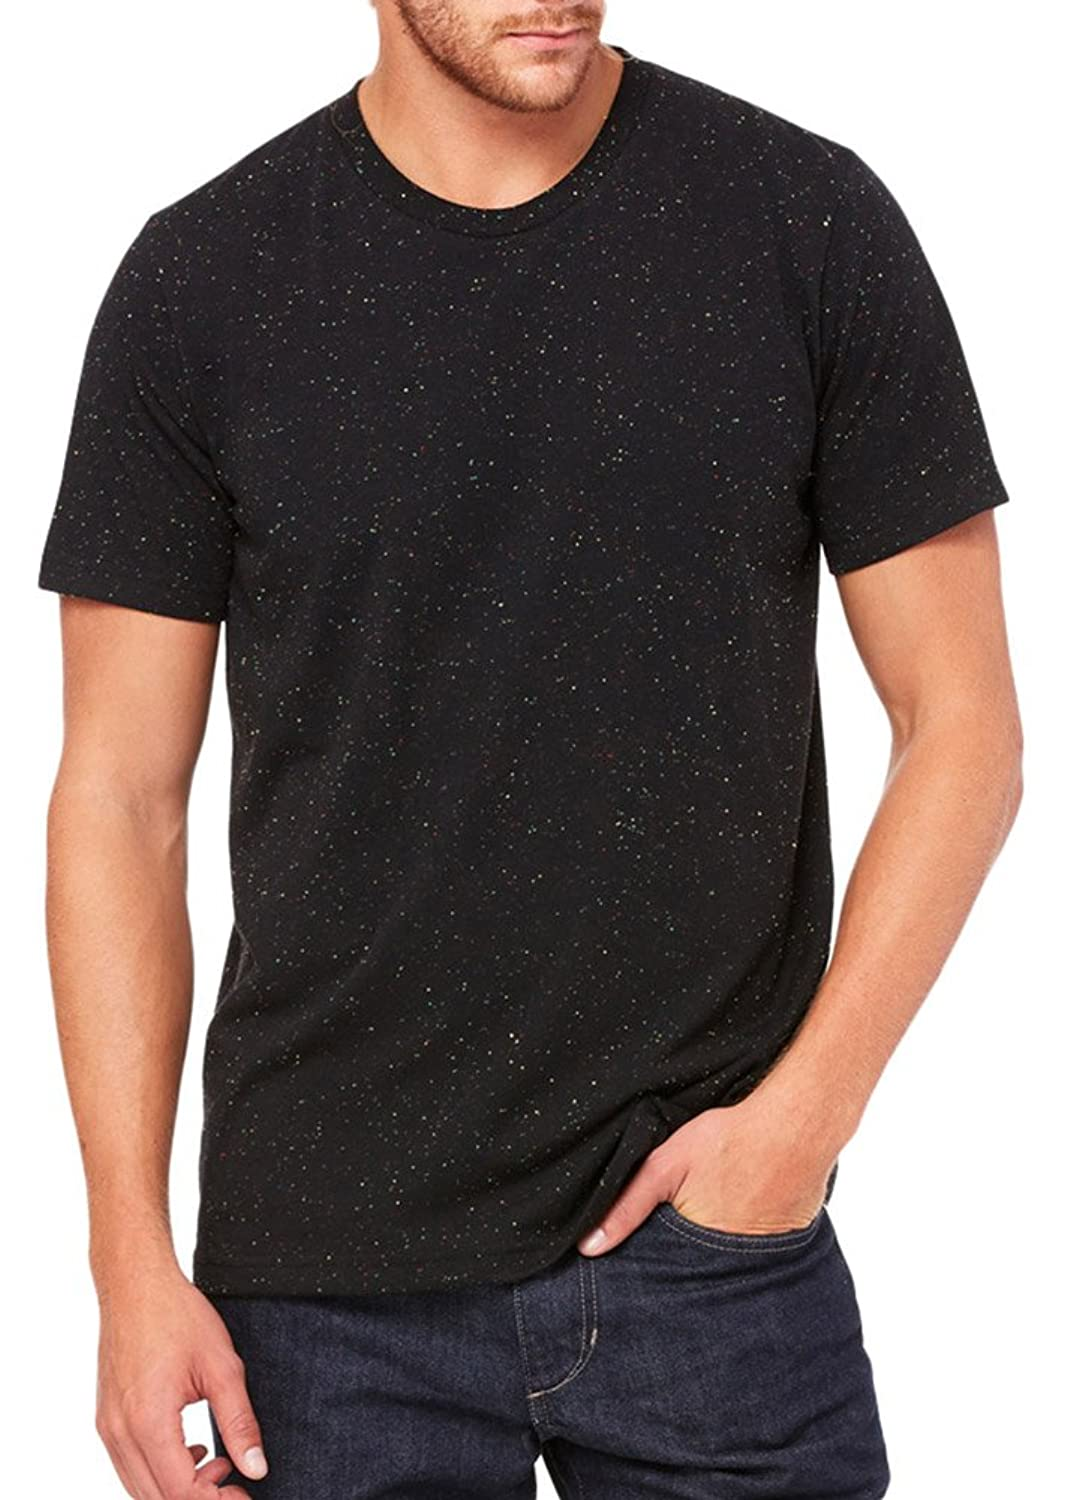 Bella + Canvas Unisex Poly-Cotton Short-Sleeve T-Shirt (3650) BLACK SPECKLED